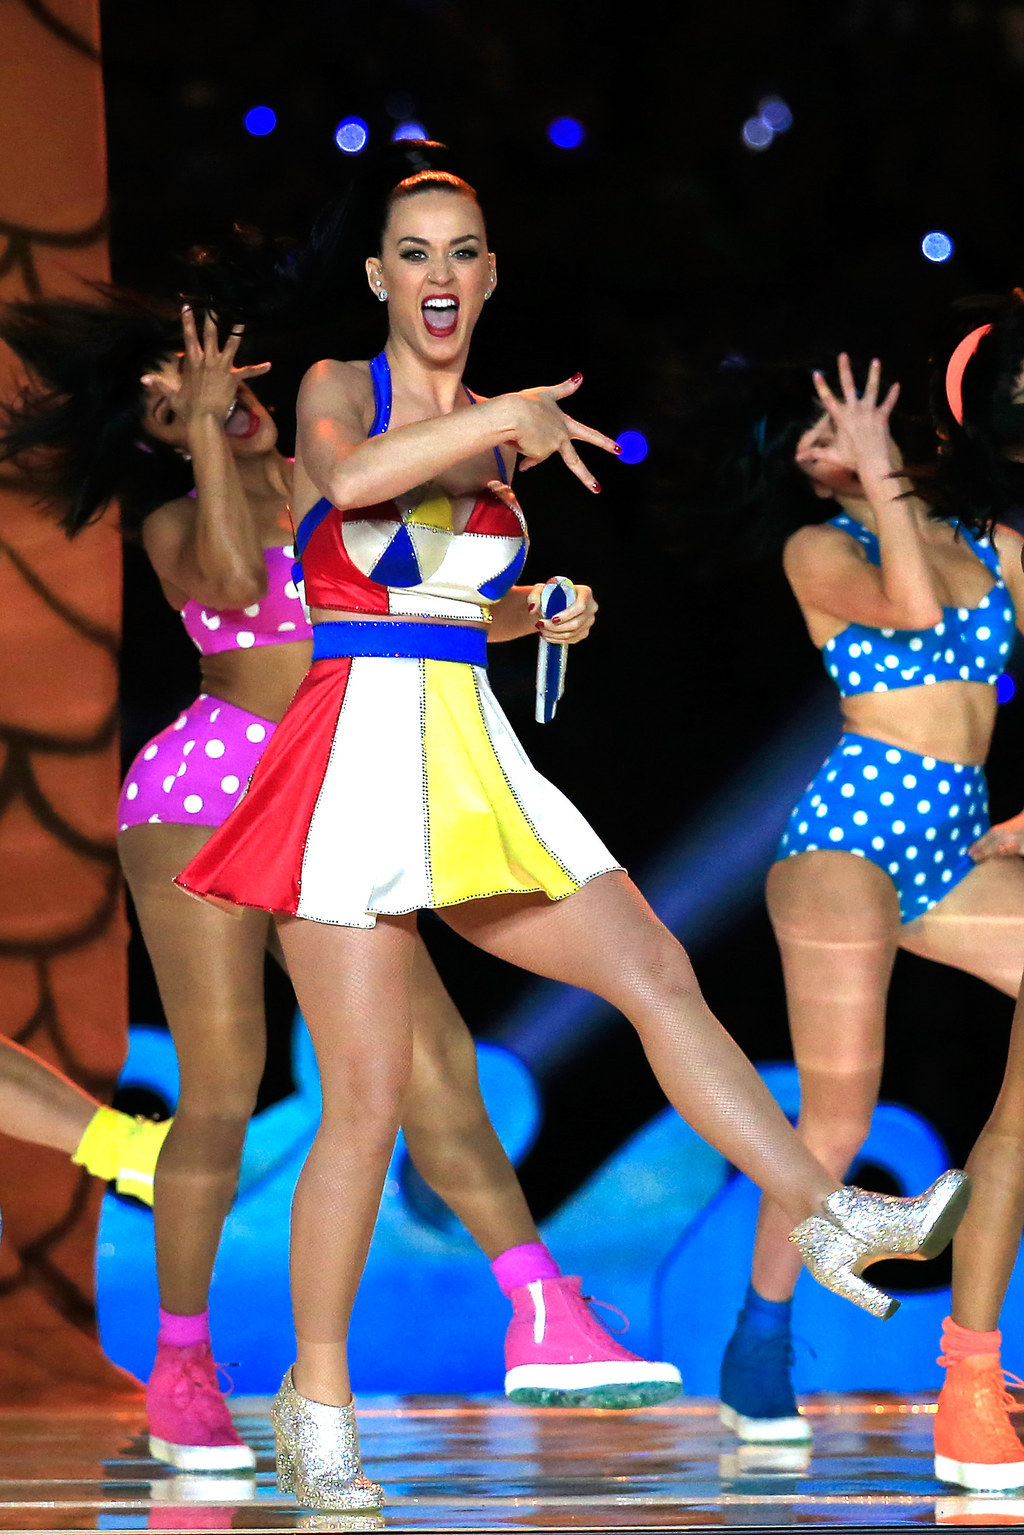 Katy Perry Got 'XLIX' Tattooed On Her Finger After Her Super Bowl Show